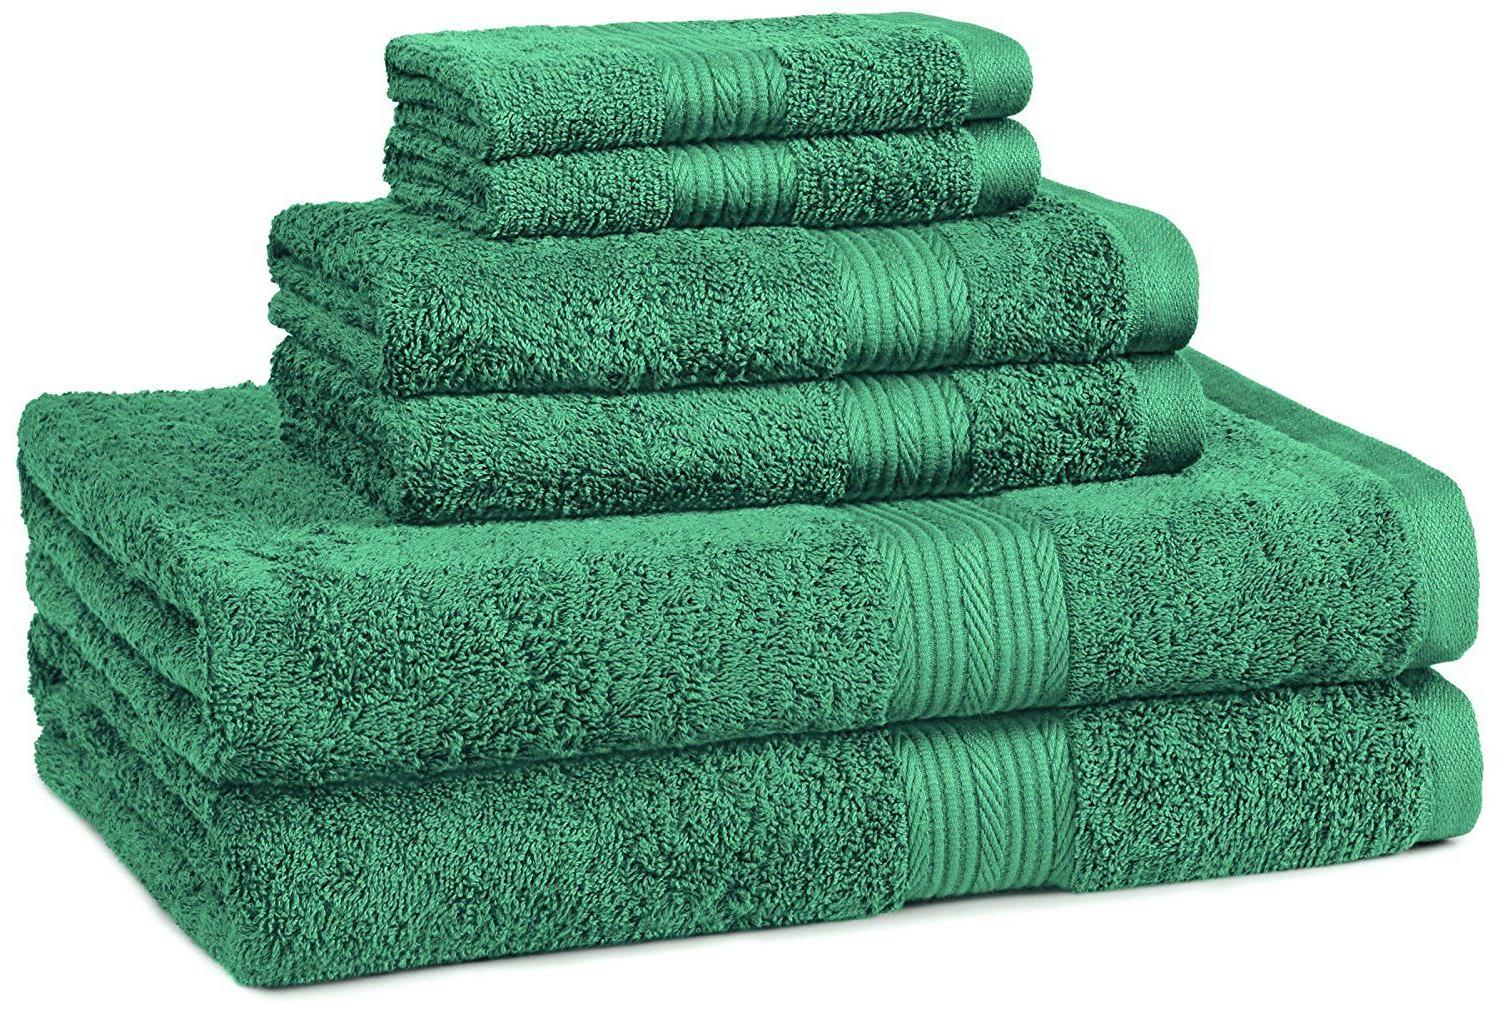 AmazonBasics Towel Pick of 7 Colors Bathroom